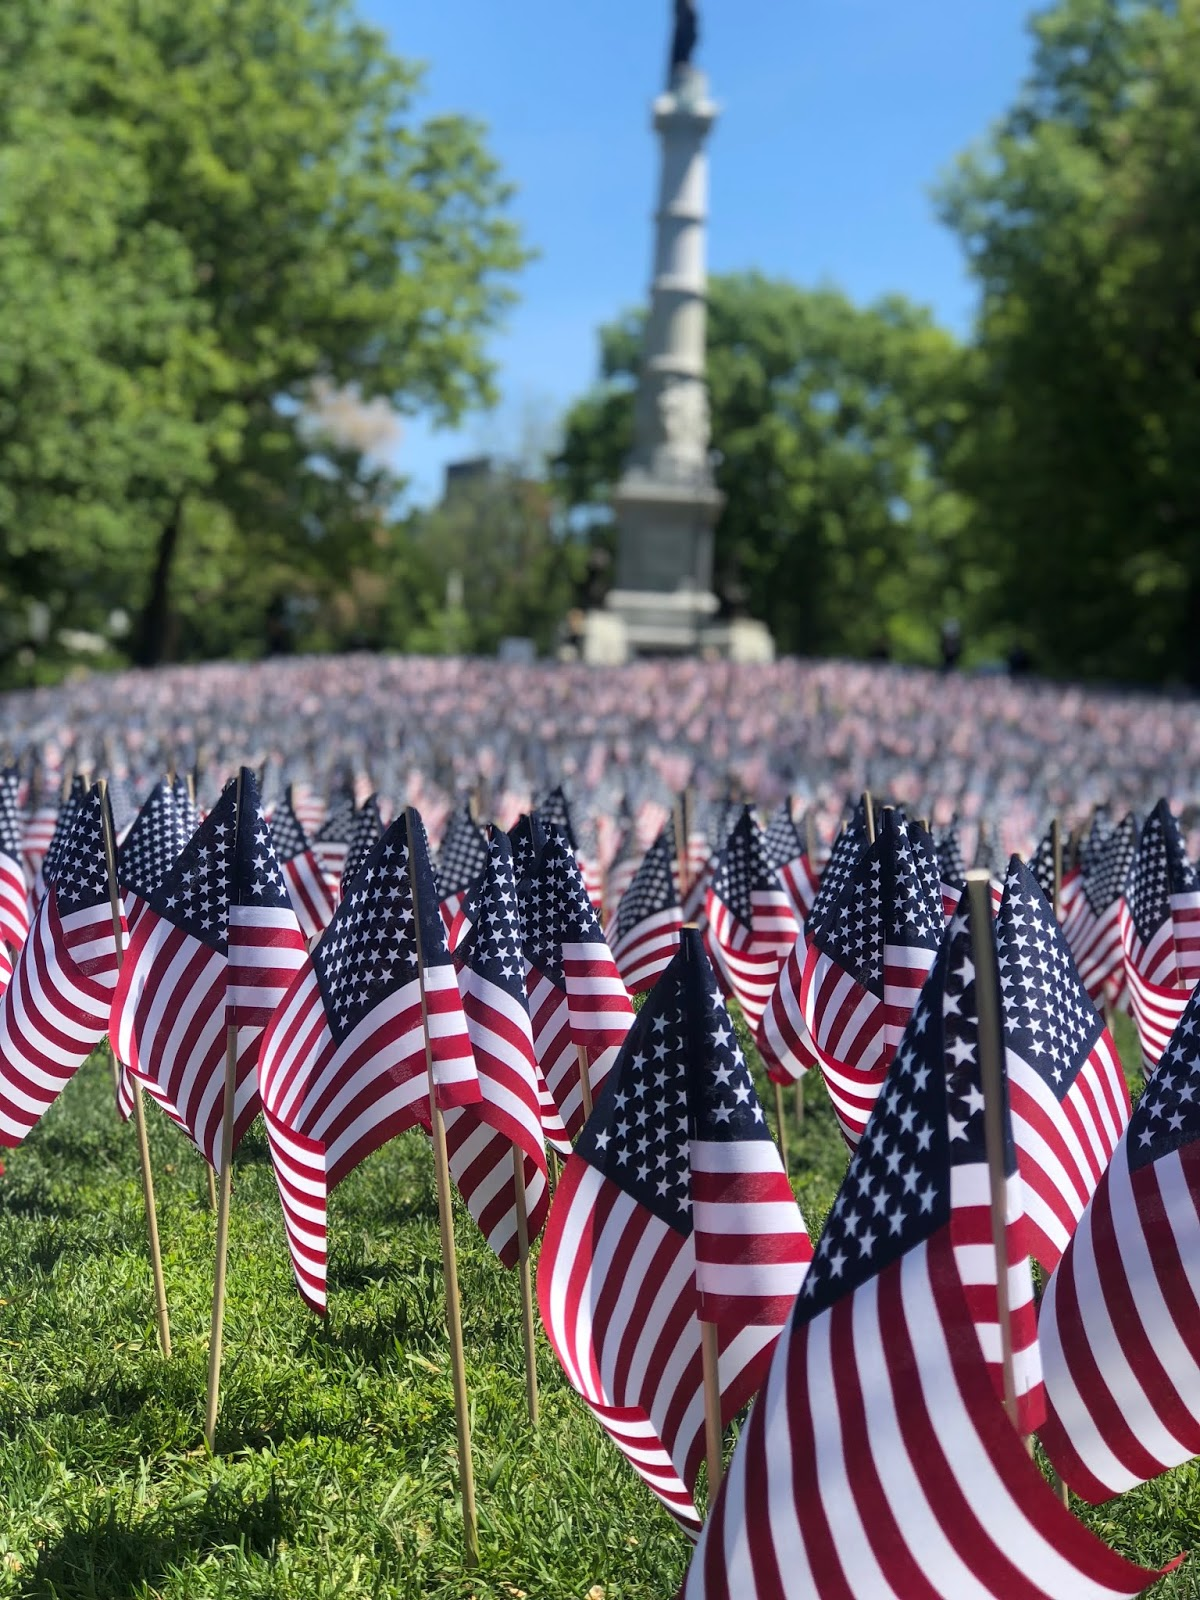 America flags for memorial day, boston common, memorial day